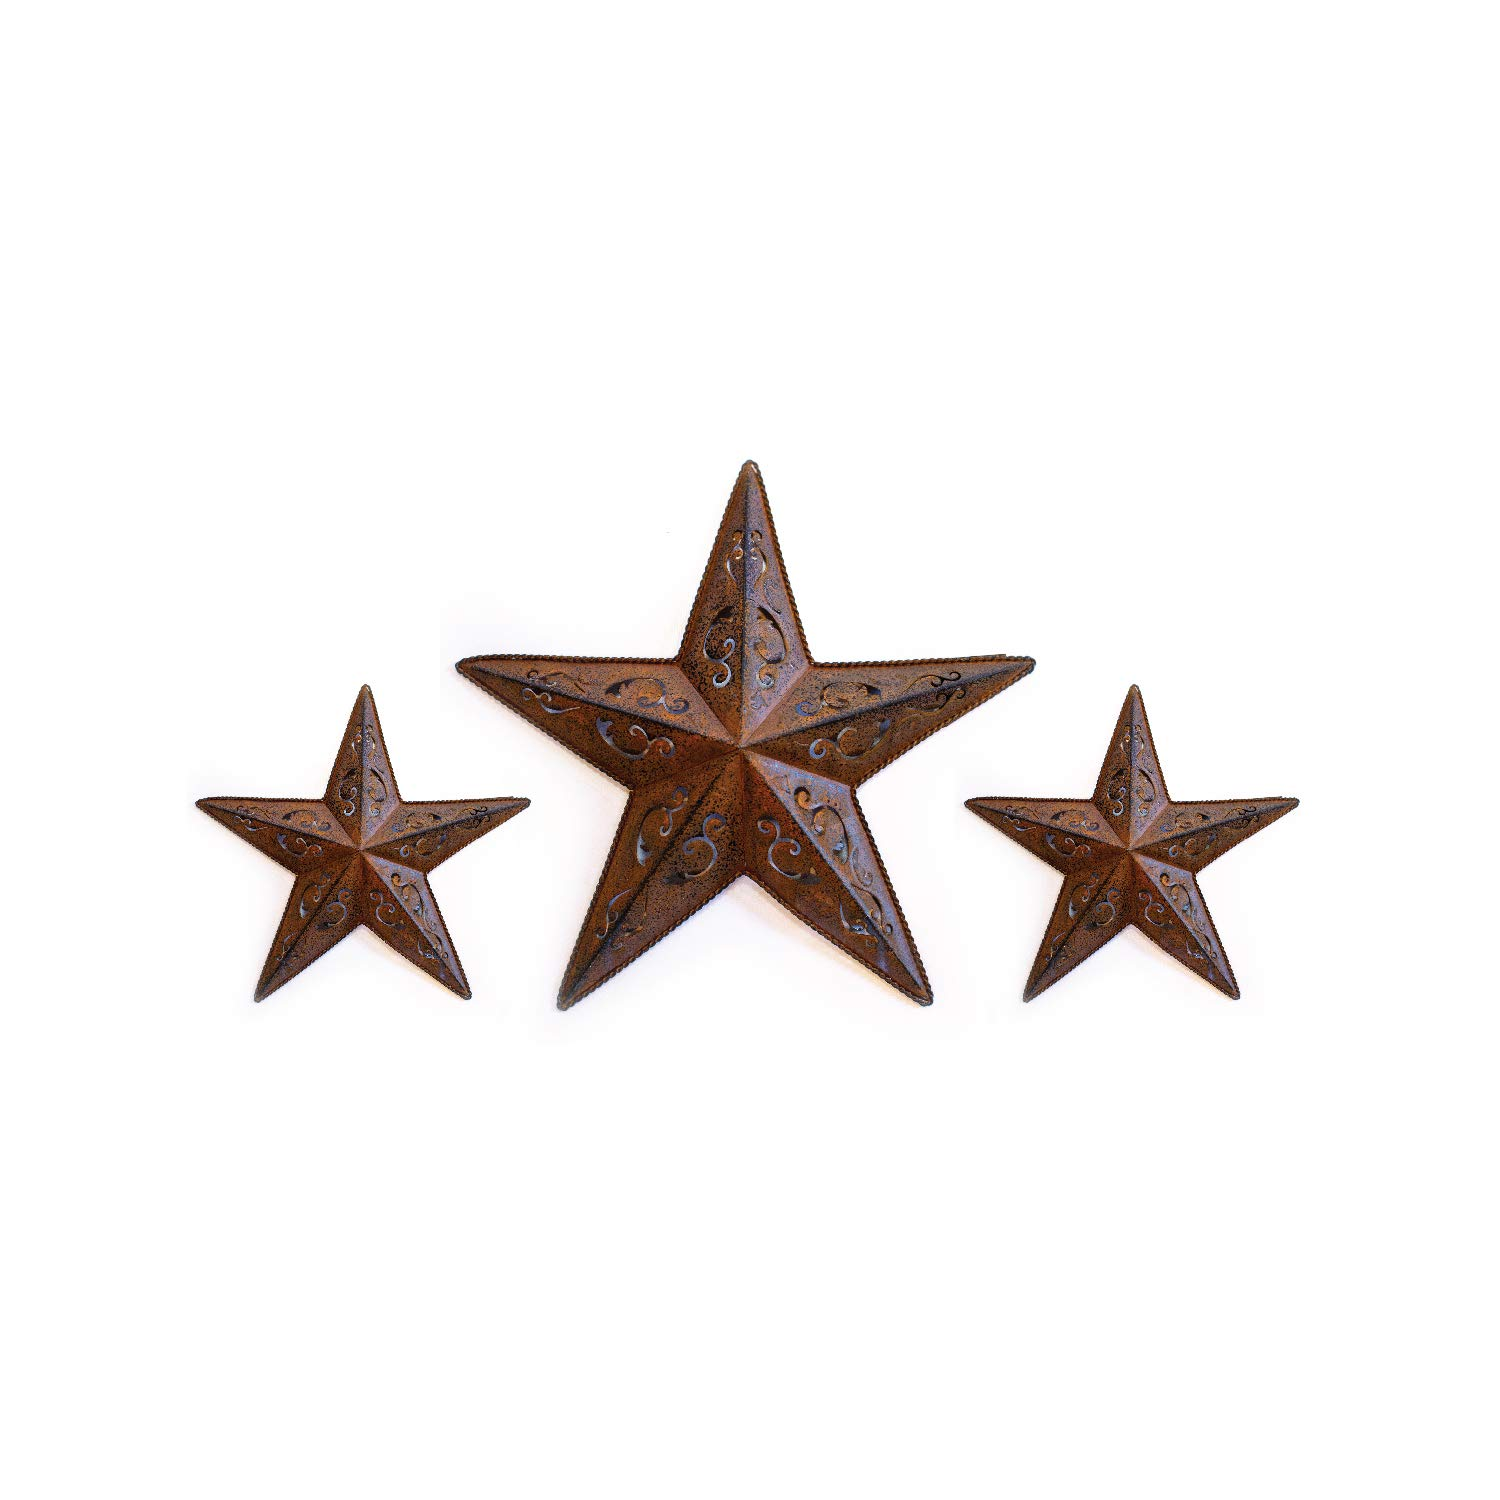 """RUSTY LACY METAL BARN STAR SET - 2X 12"""" 1X 18"""" for rustic country indoor outdoor Christmas home decor. Interior exterior cut out metal stars decorations look great hanging on house walls fence porch"""